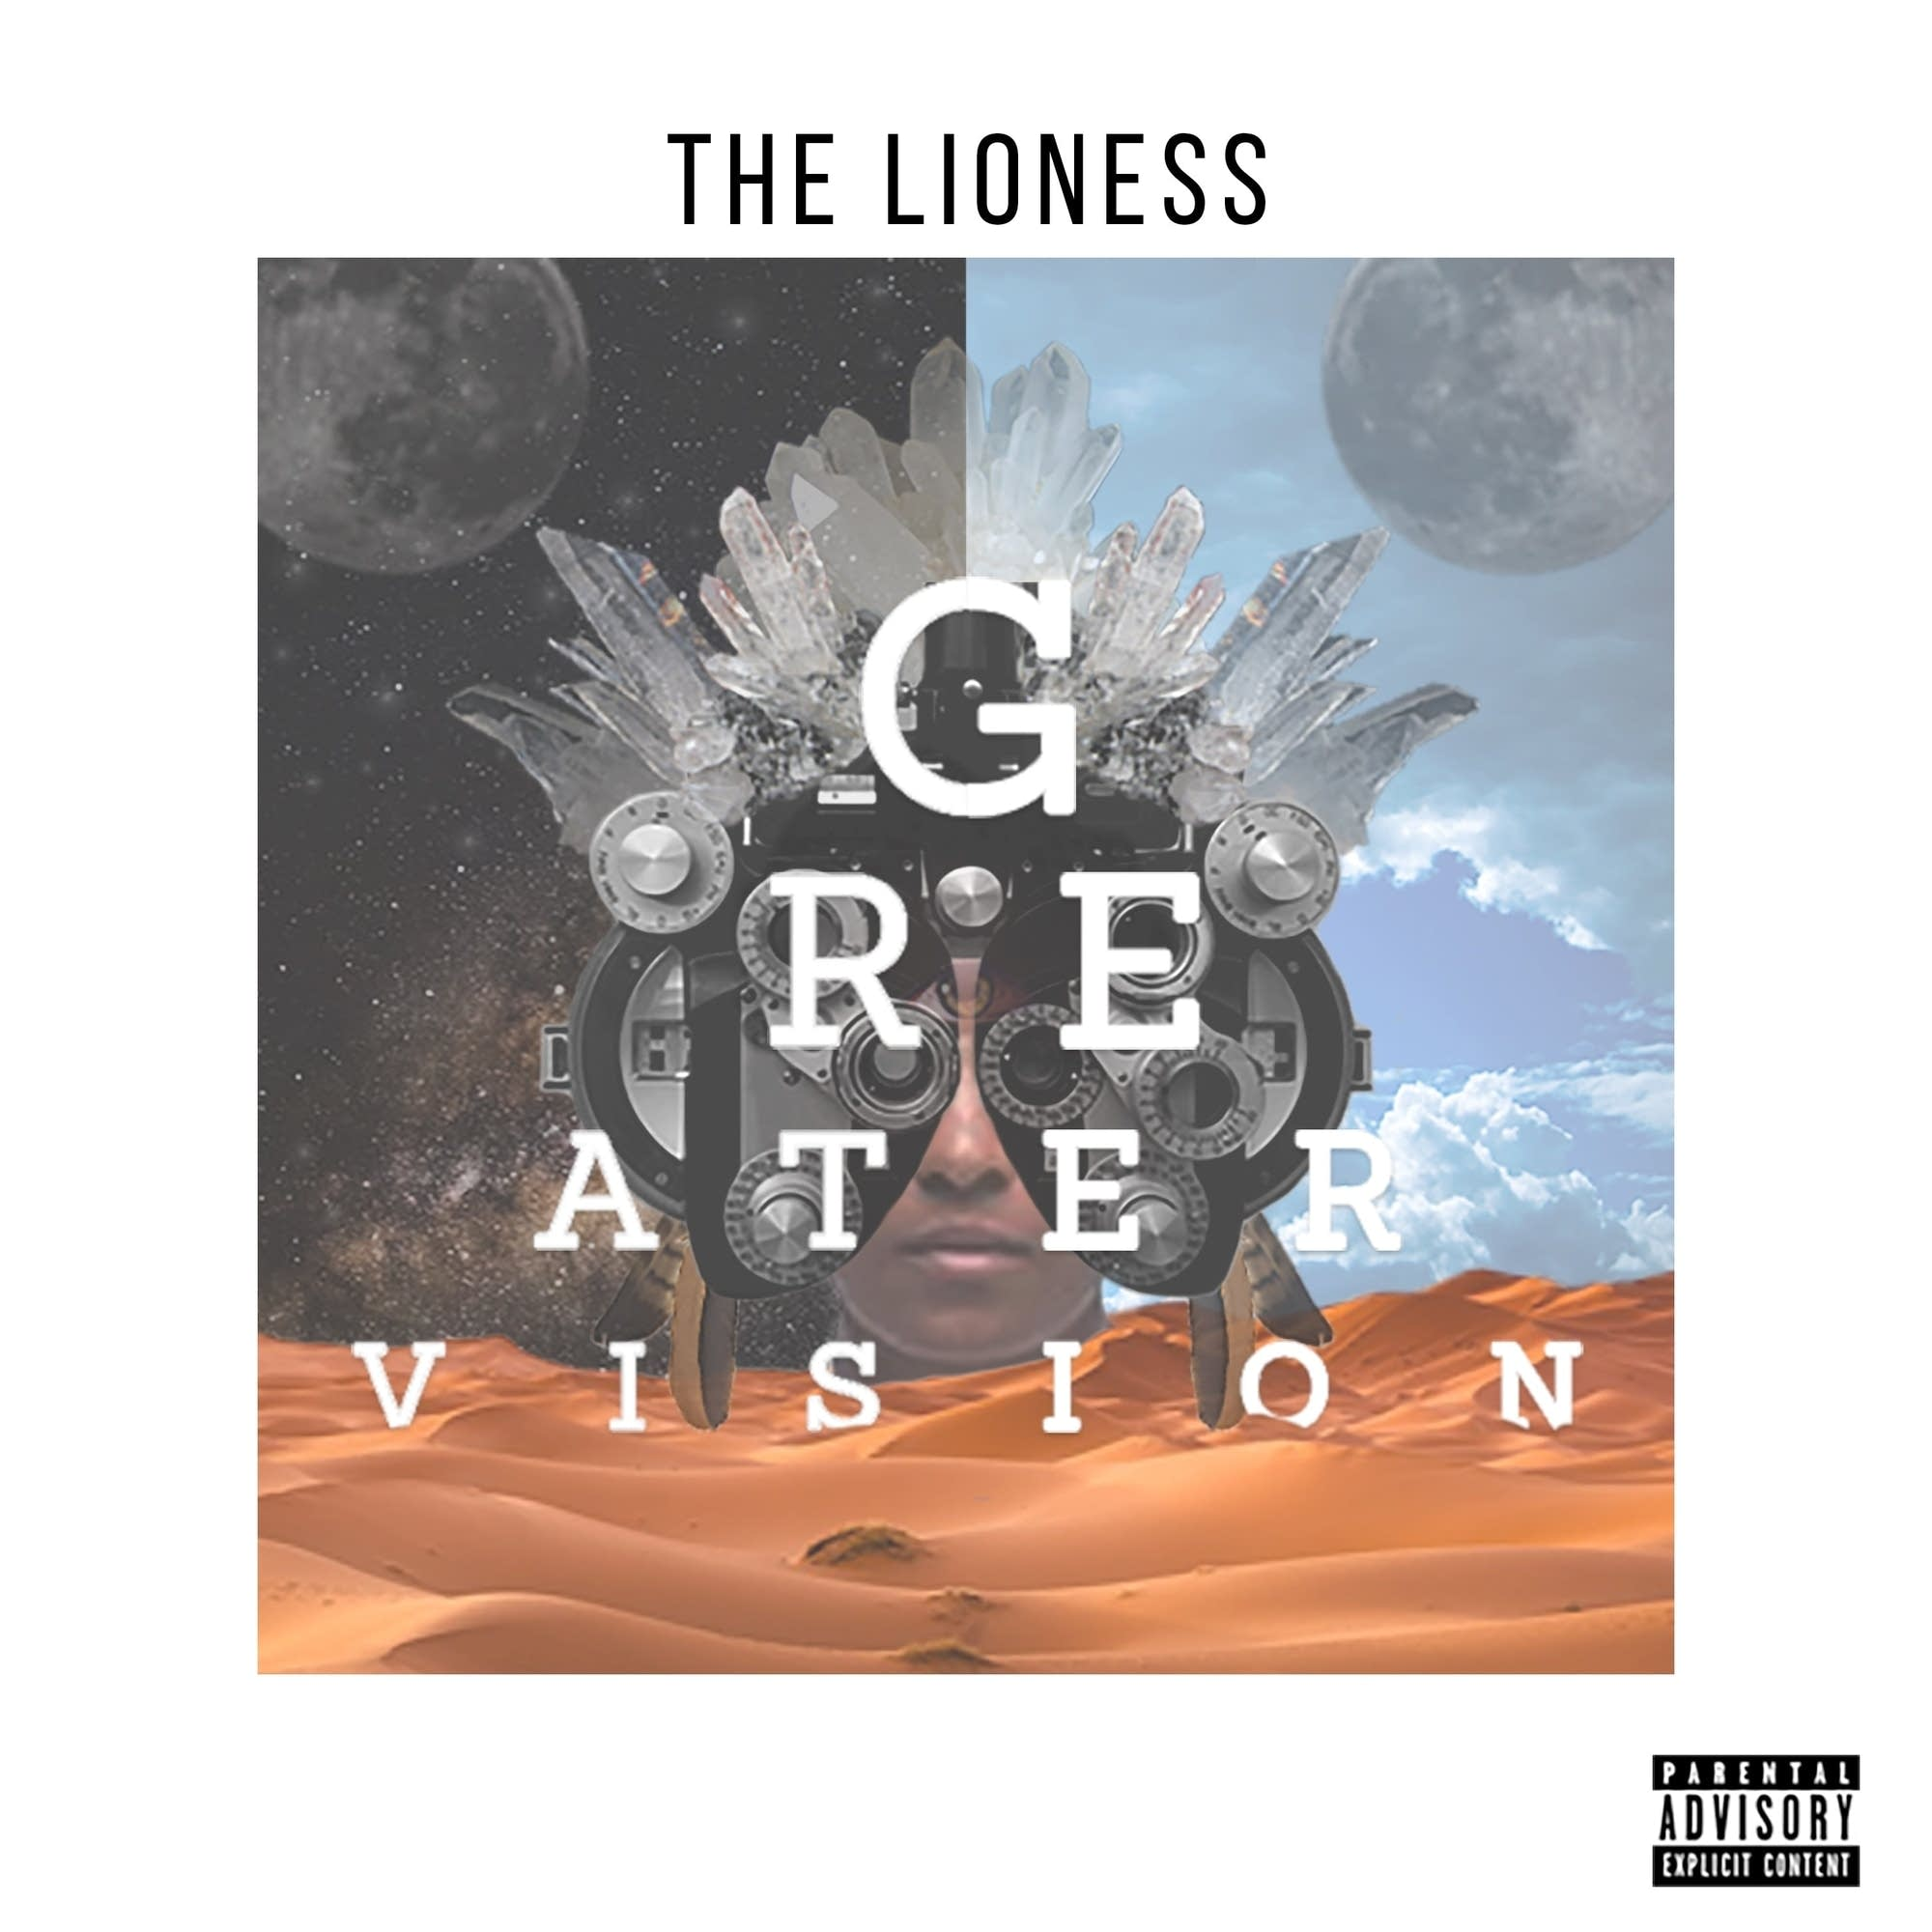 The Lioness - Greater Vision